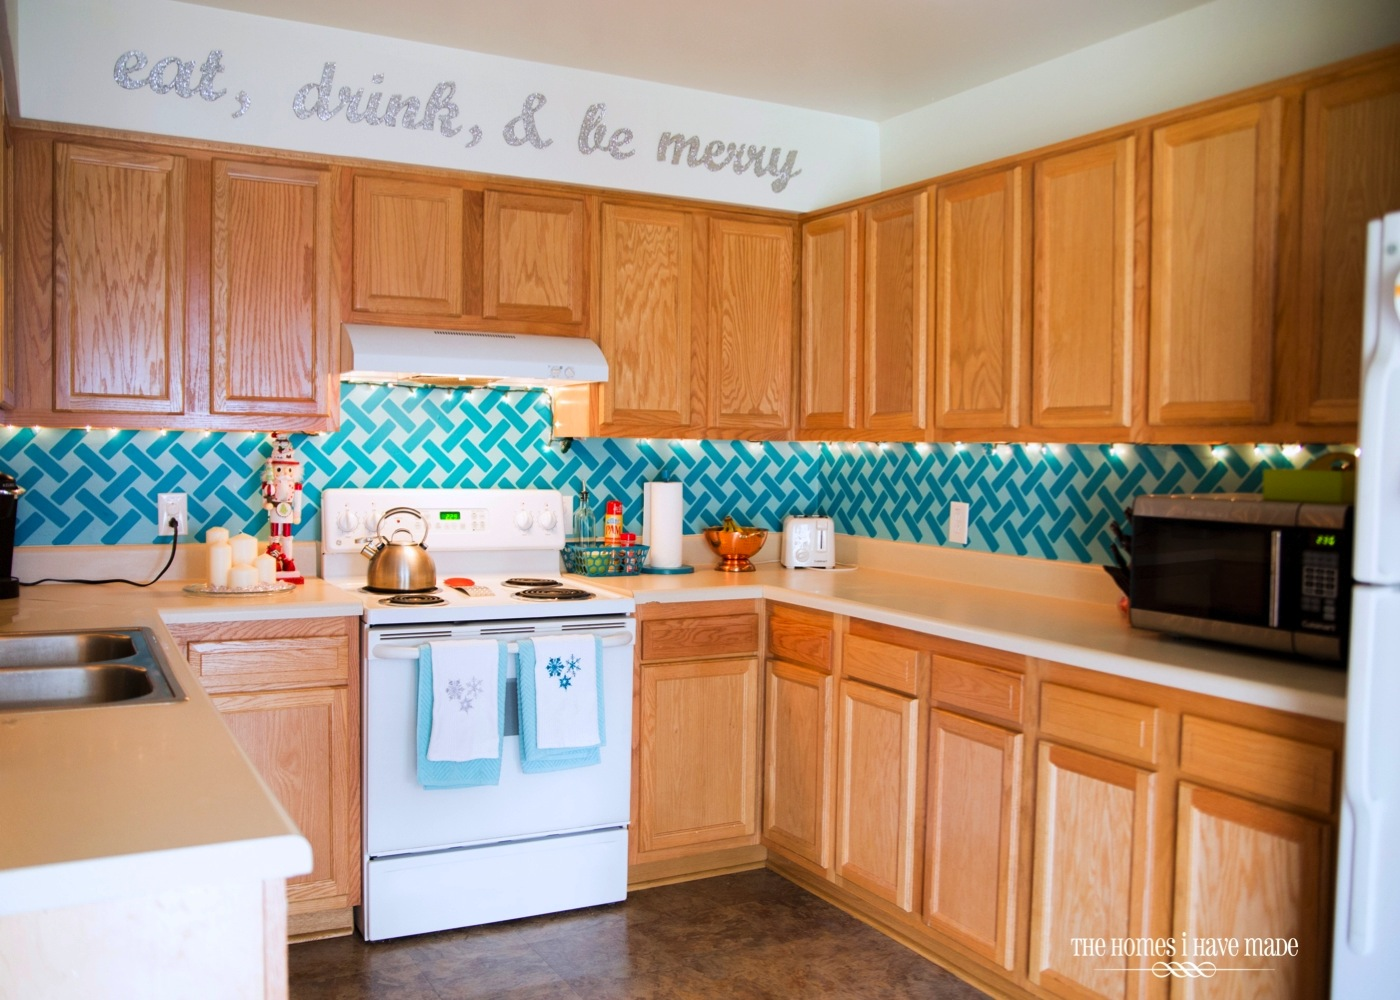 Holiday Home Tour 2013-007